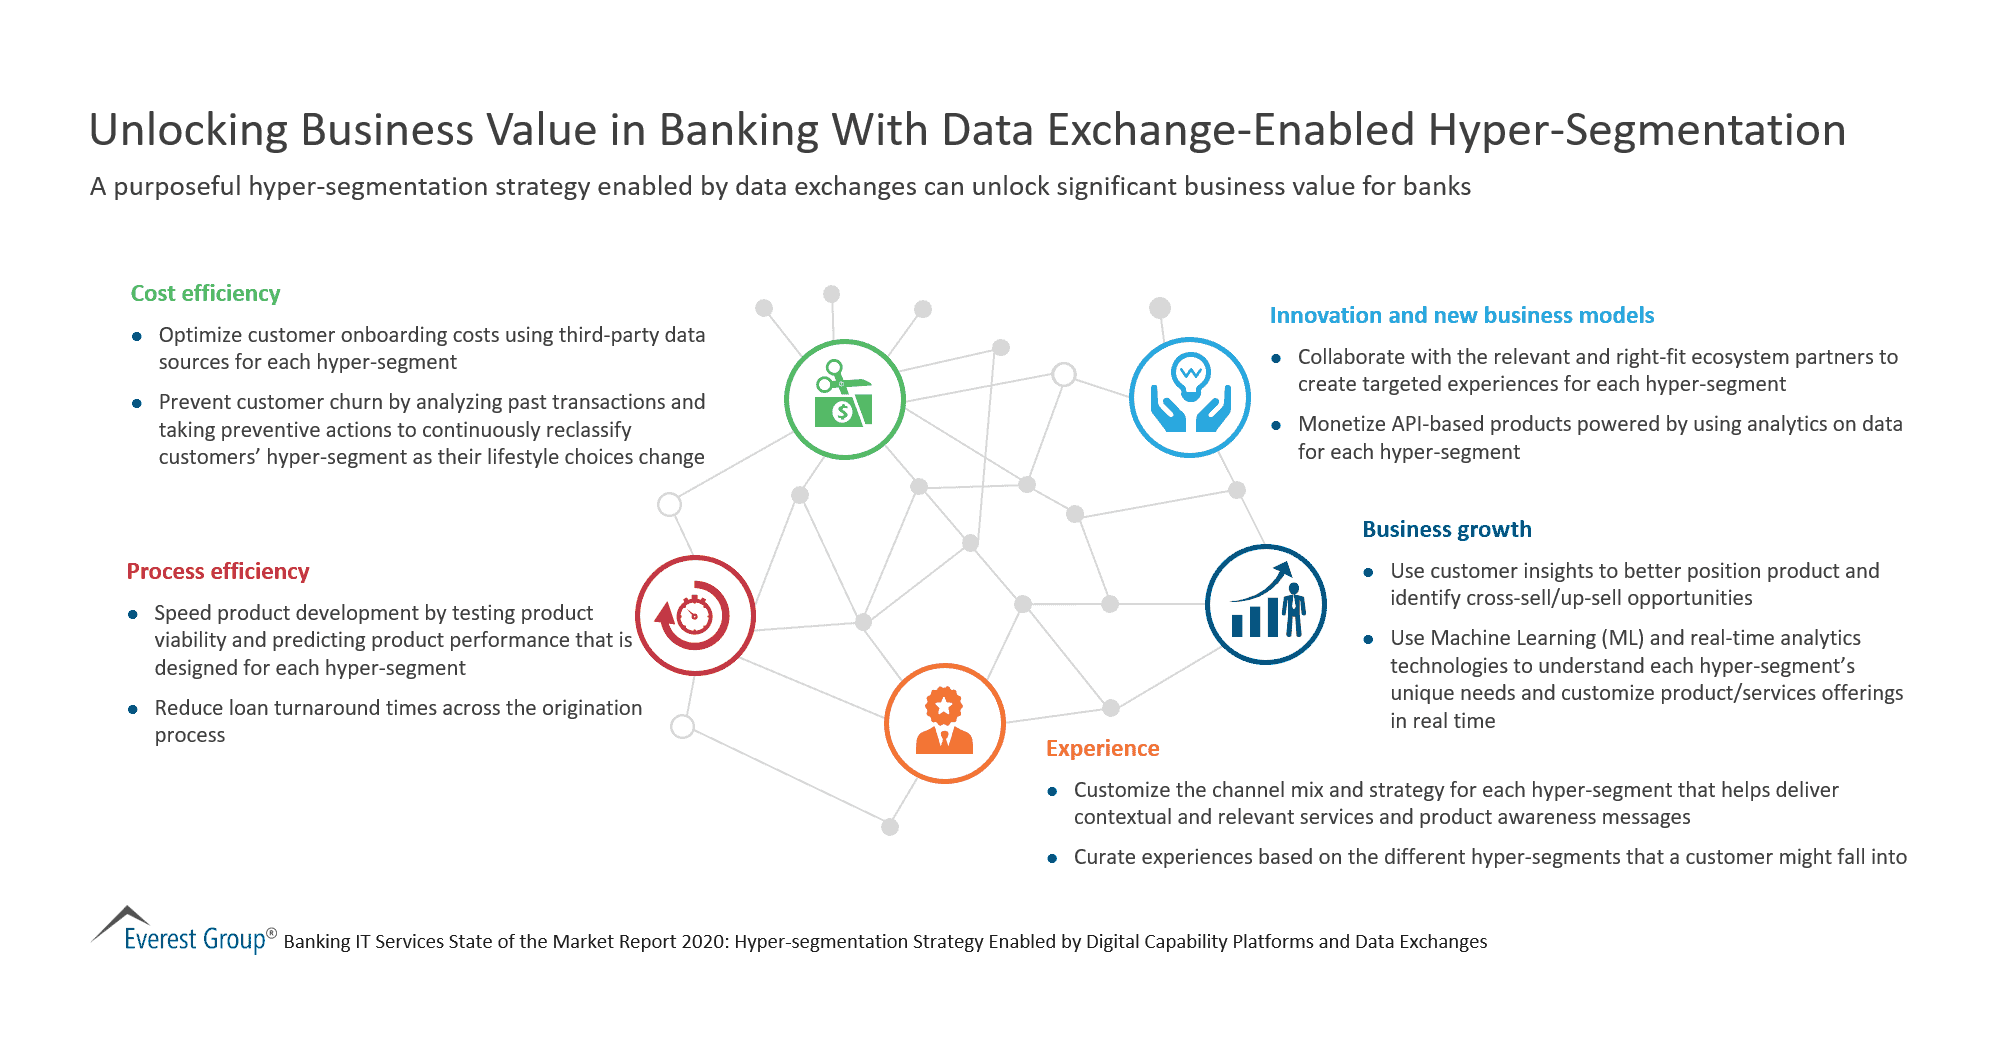 Unlocking Business Value in Banking With Data Exchange-Enabled Hyper-Segmentation